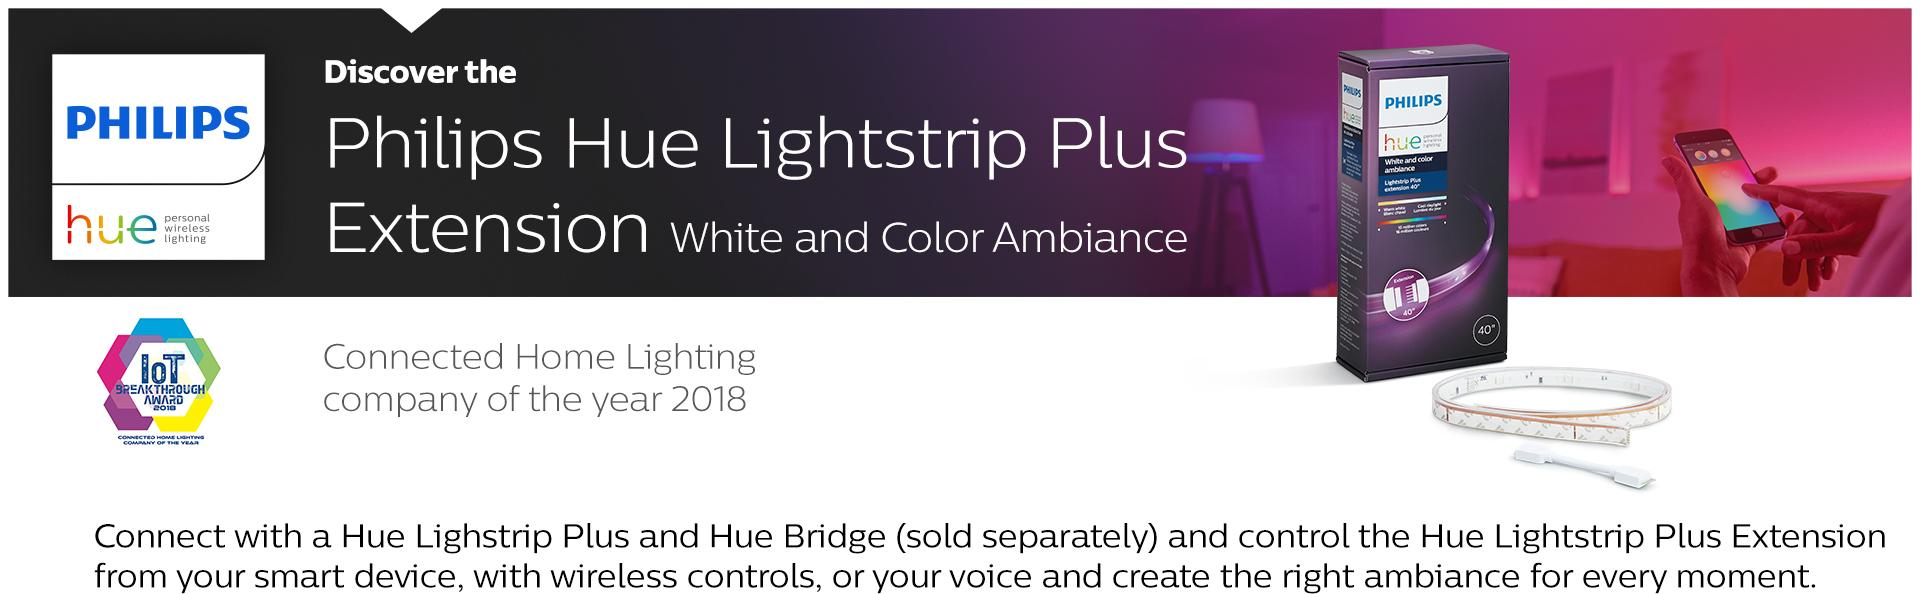 philips hue lightstrip plus dimmable led smart light extension works with alexa apple homekit. Black Bedroom Furniture Sets. Home Design Ideas